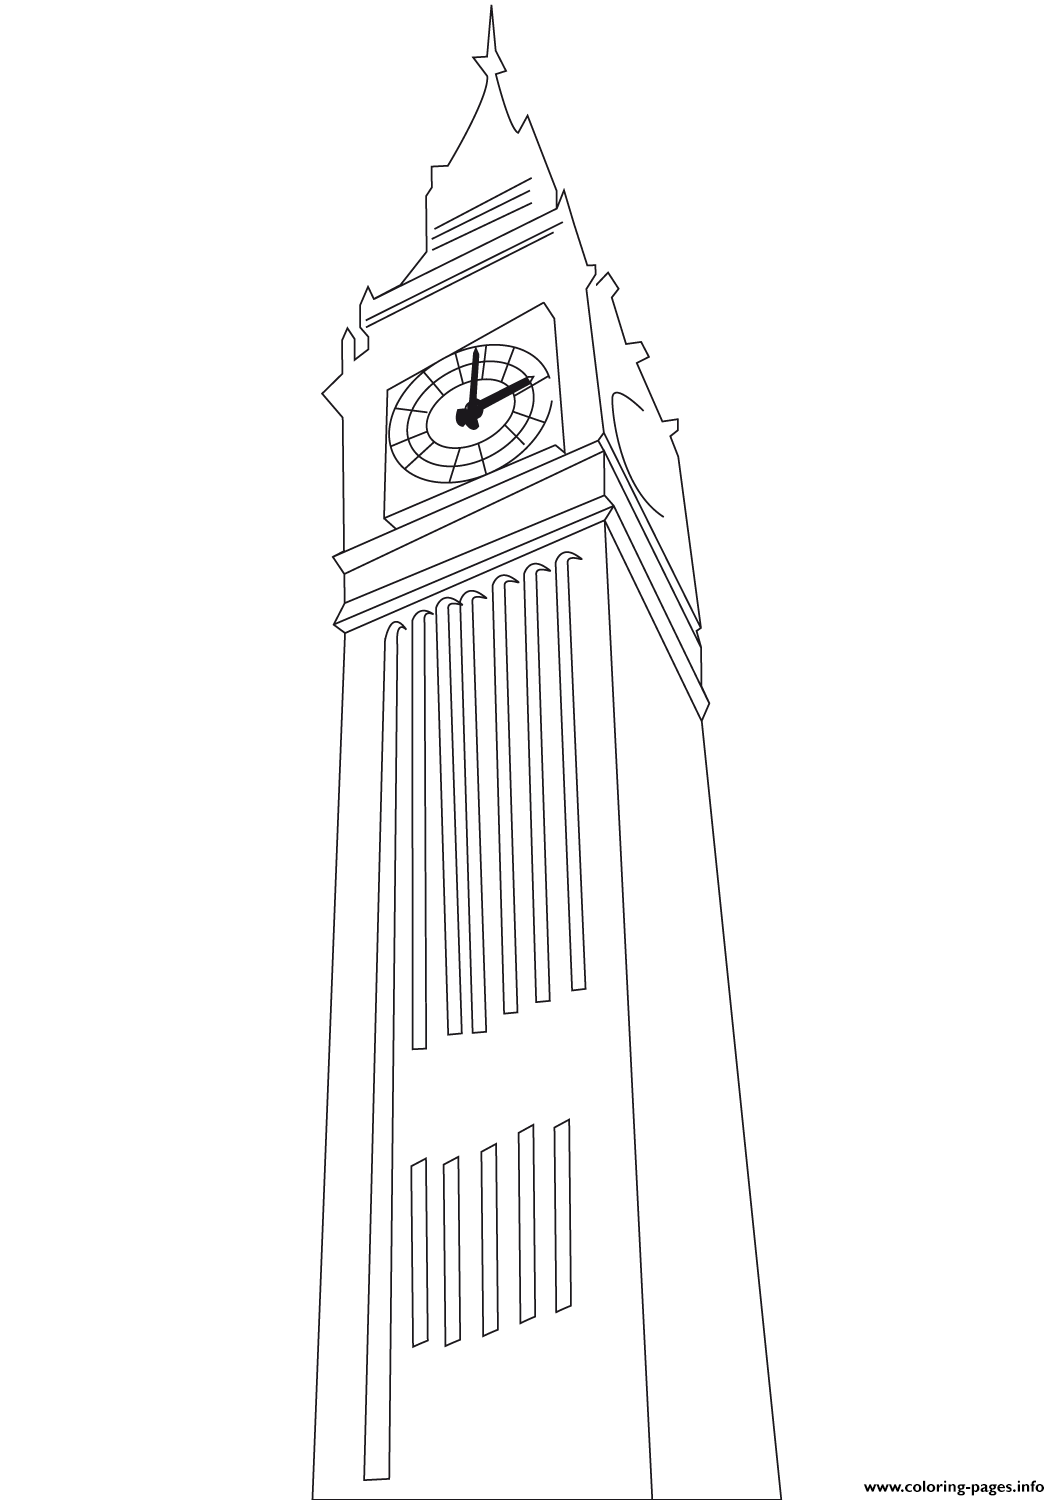 Big Ben United Kingdom coloring pages